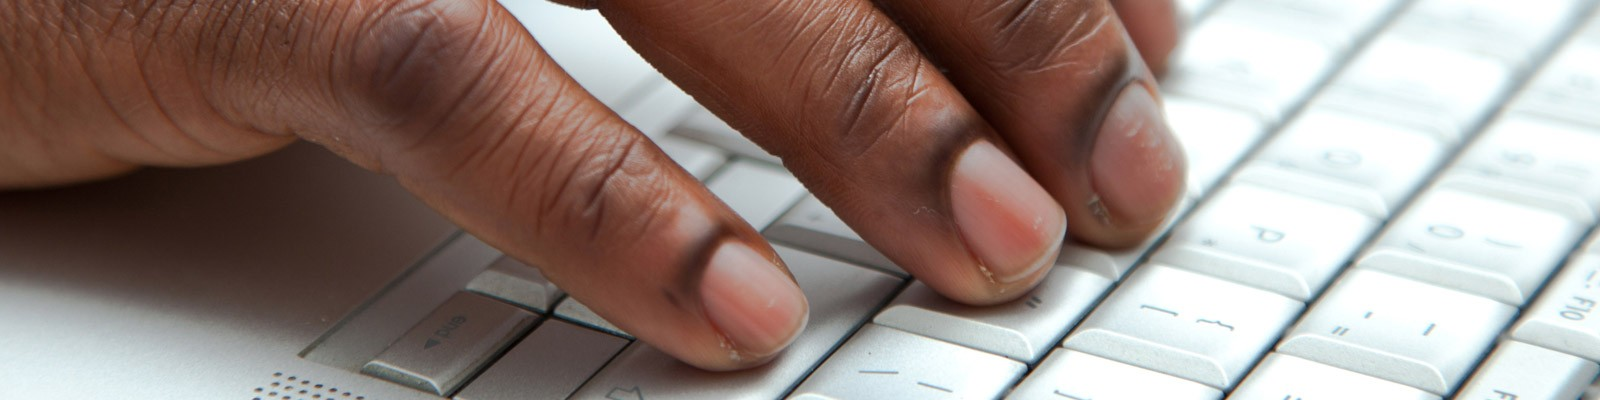 Close up of fingers typing on computer keyboard